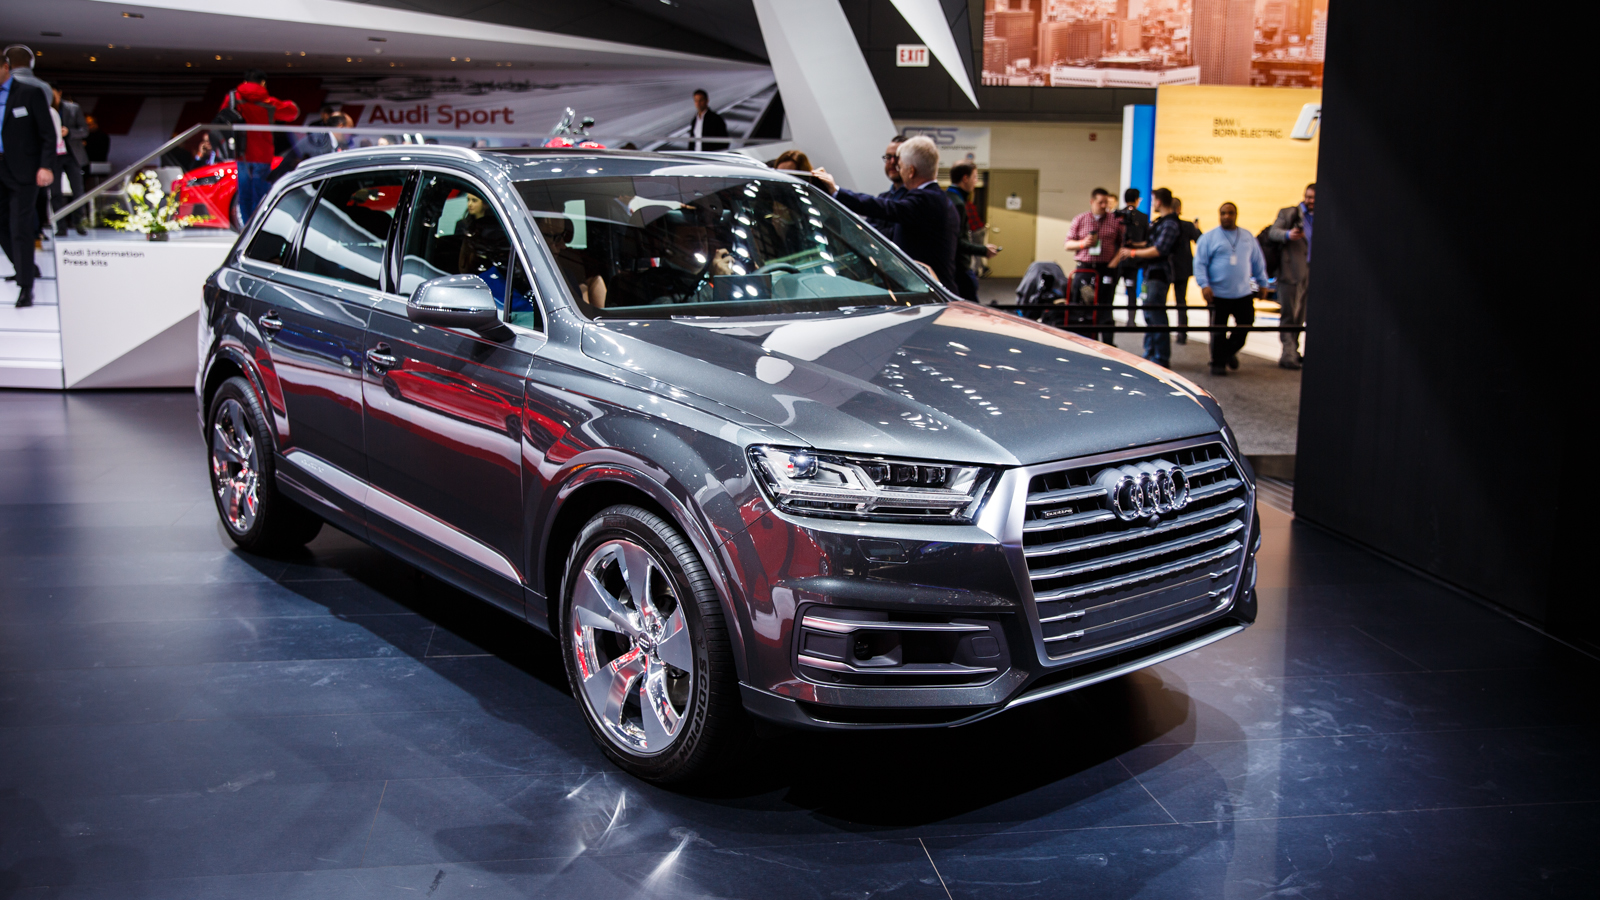 audi loads 2016 q7 with all the tech pictures cnet. Black Bedroom Furniture Sets. Home Design Ideas